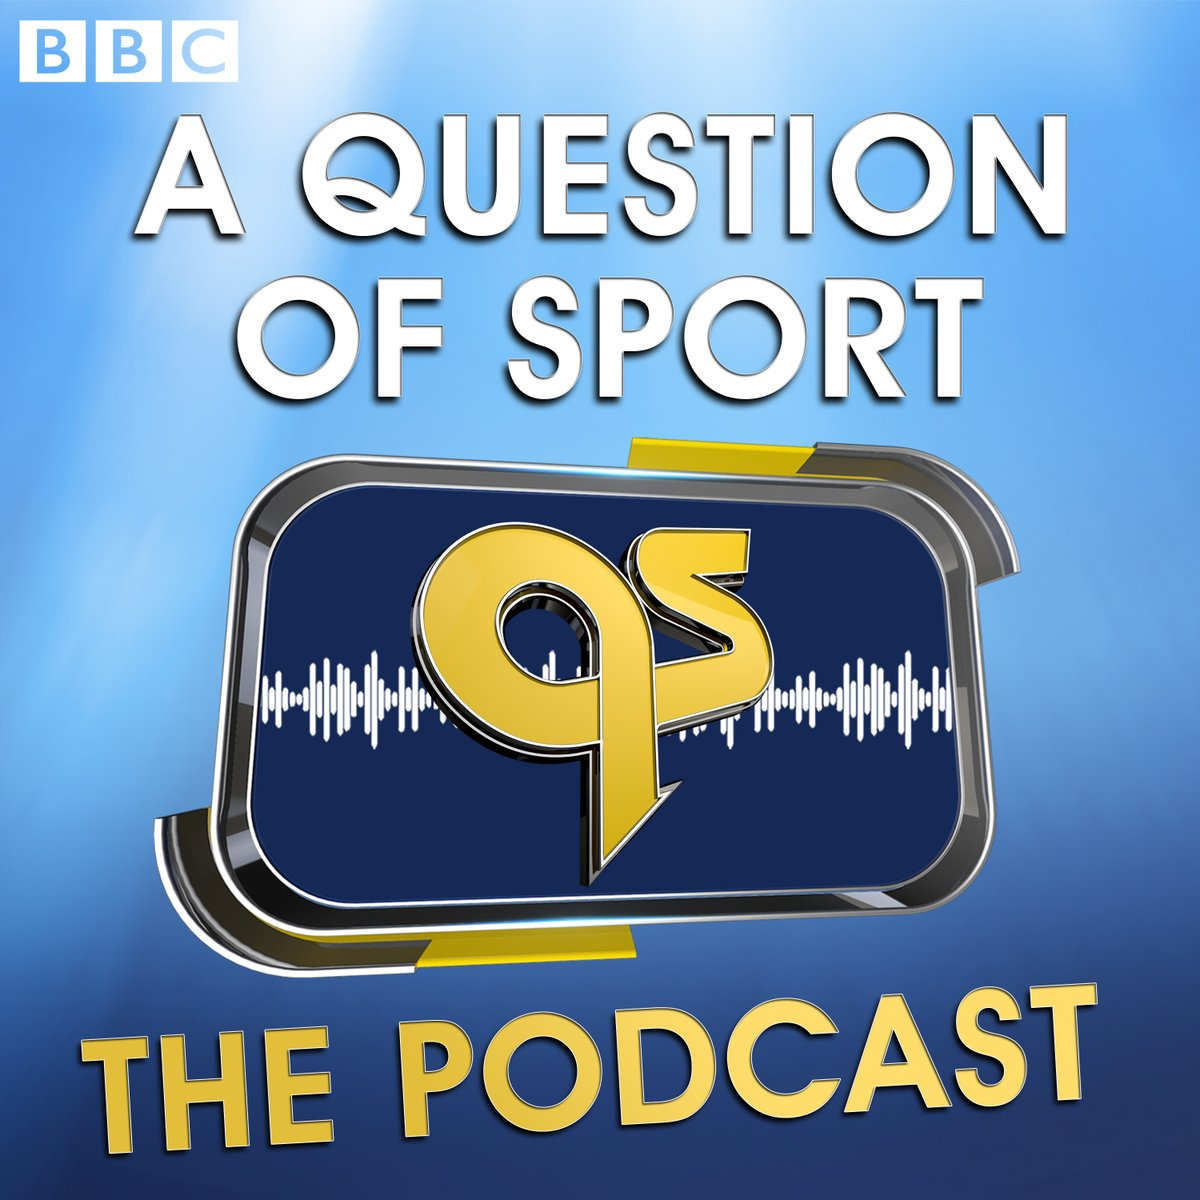 PODCAST ALERT 📱🎧💻  Missed the radio show at the weekend? 😱  No problem.  Listen to the latest #QuestionofSport podcast now. 😃  @philtufnell & @BenFoster🏏⚽️ vs @matt9dawson & @JNETTEKWAKYE🏉🥇  Listen on @BBCSounds ⬇️ https://t.co/uSYrV2Y9rF https://t.co/5LBHx1Ho99